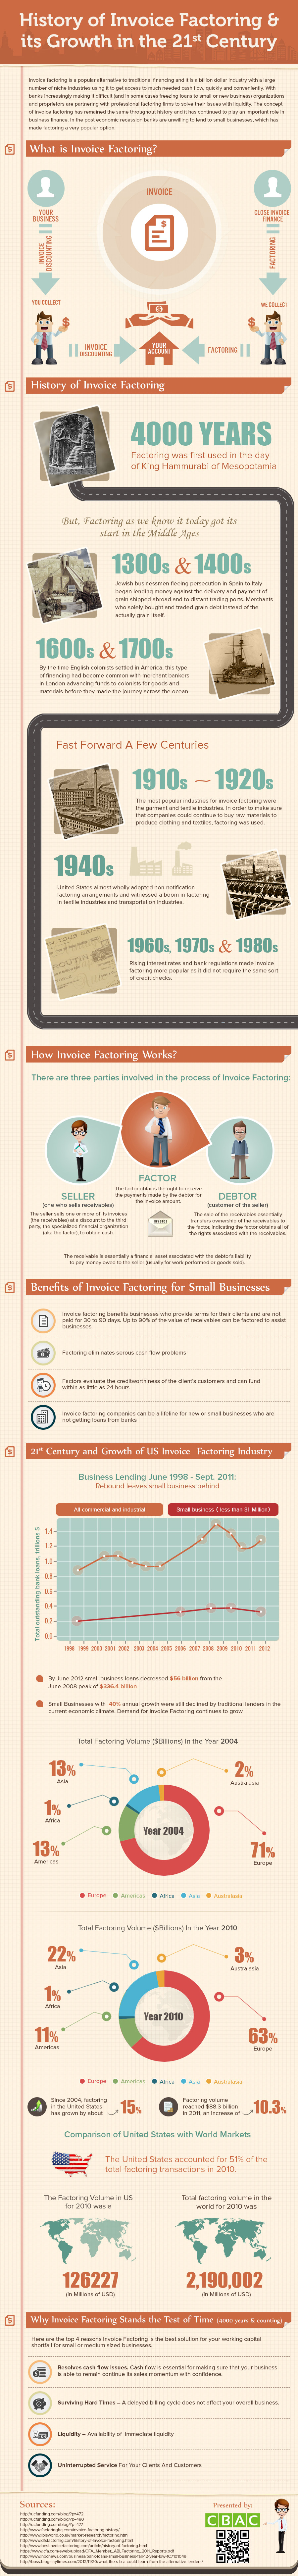 History of Invoice Factoring and Its Growth in the 21st Century